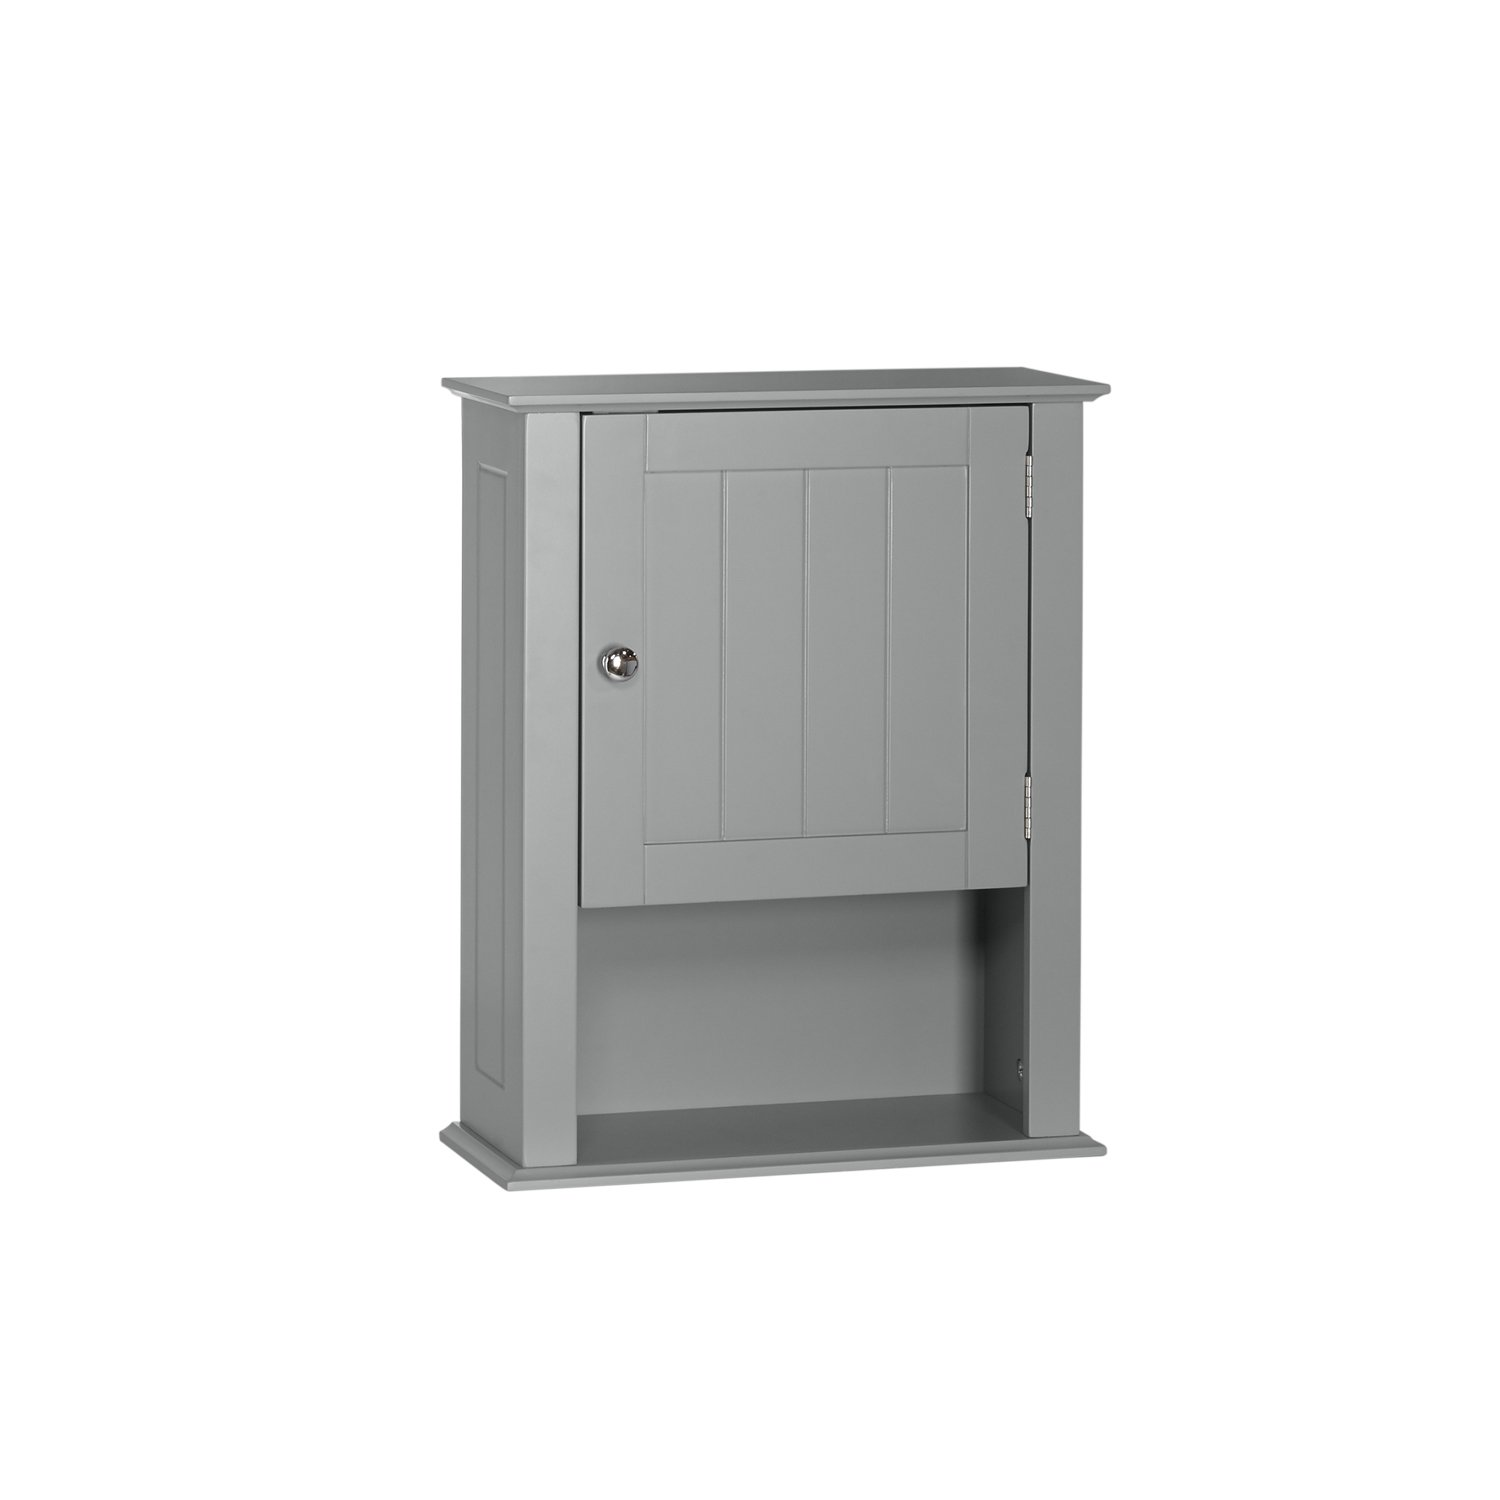 RiverRidge Ashland Collection - Single Door Wall Cabinet - Gray by RiverRidge Home